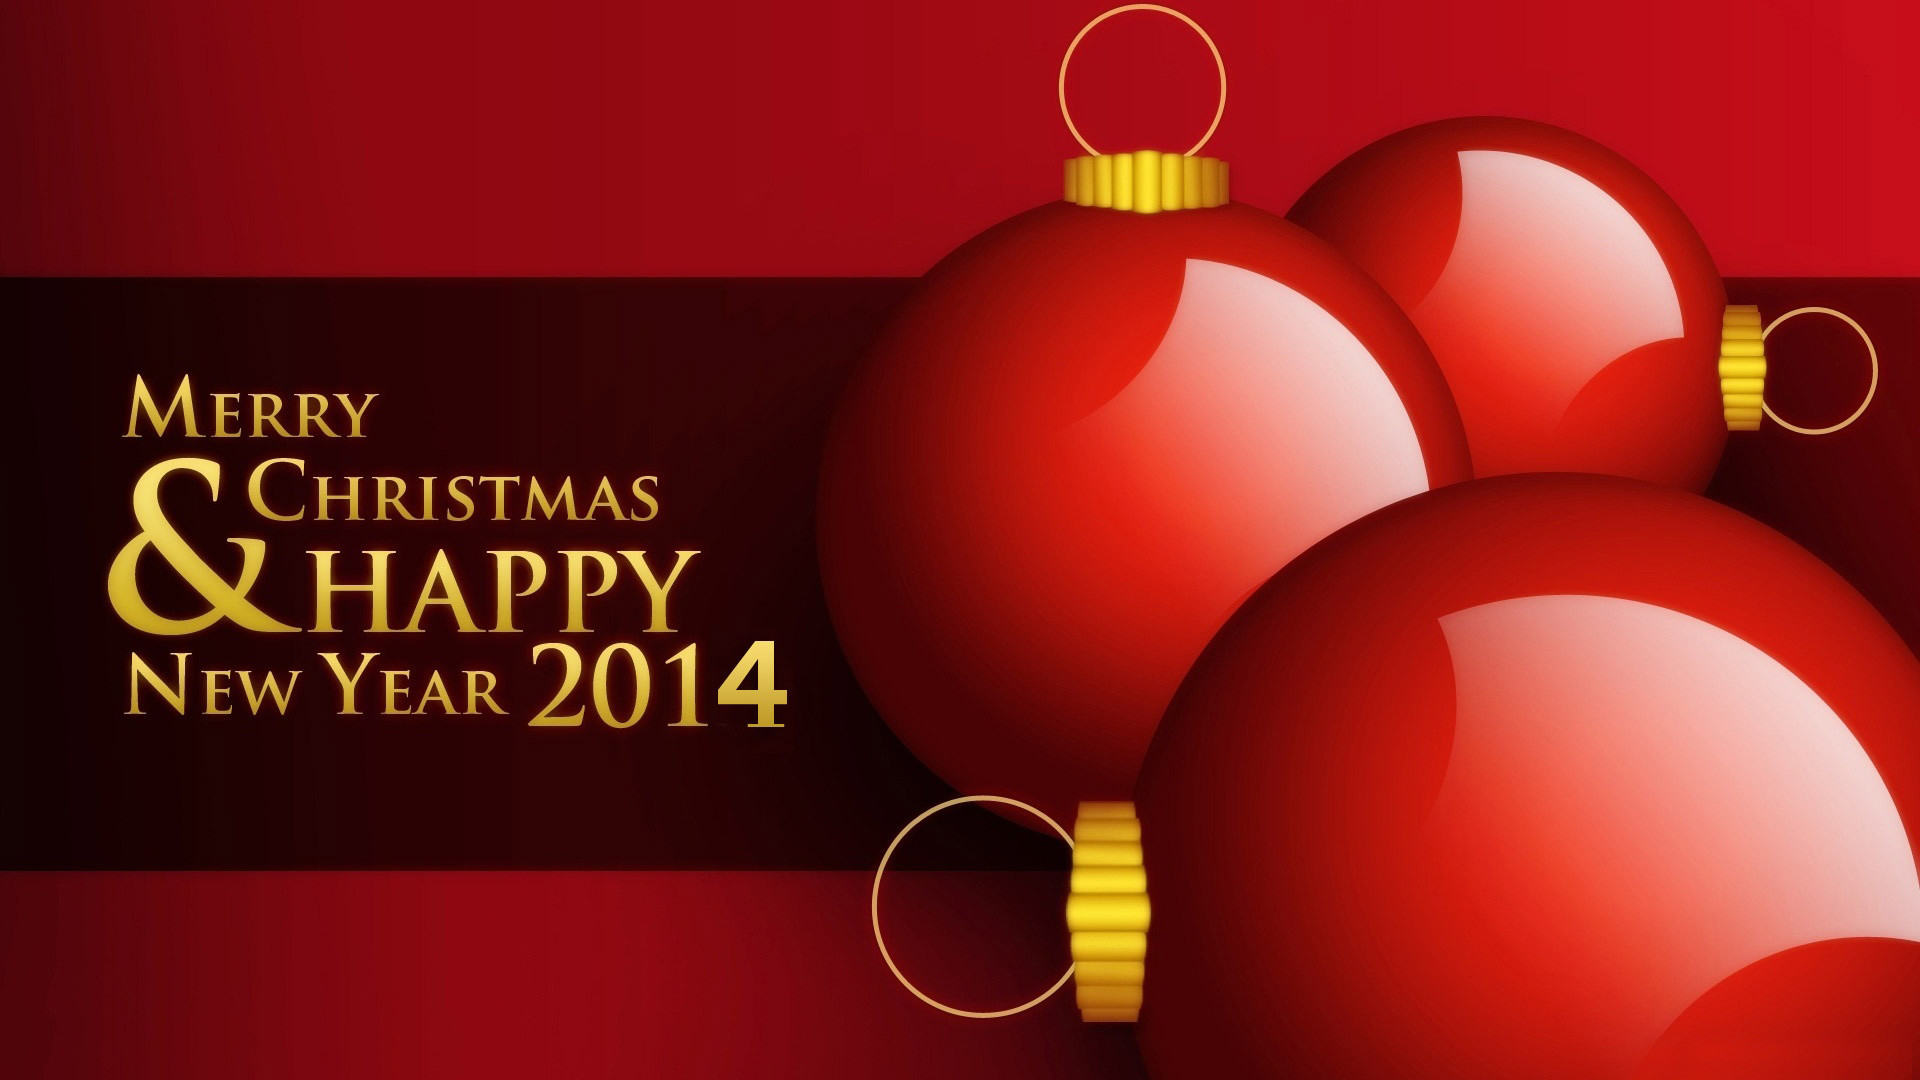 Merry Christmas and Happy New Year 2014 Wallpapers